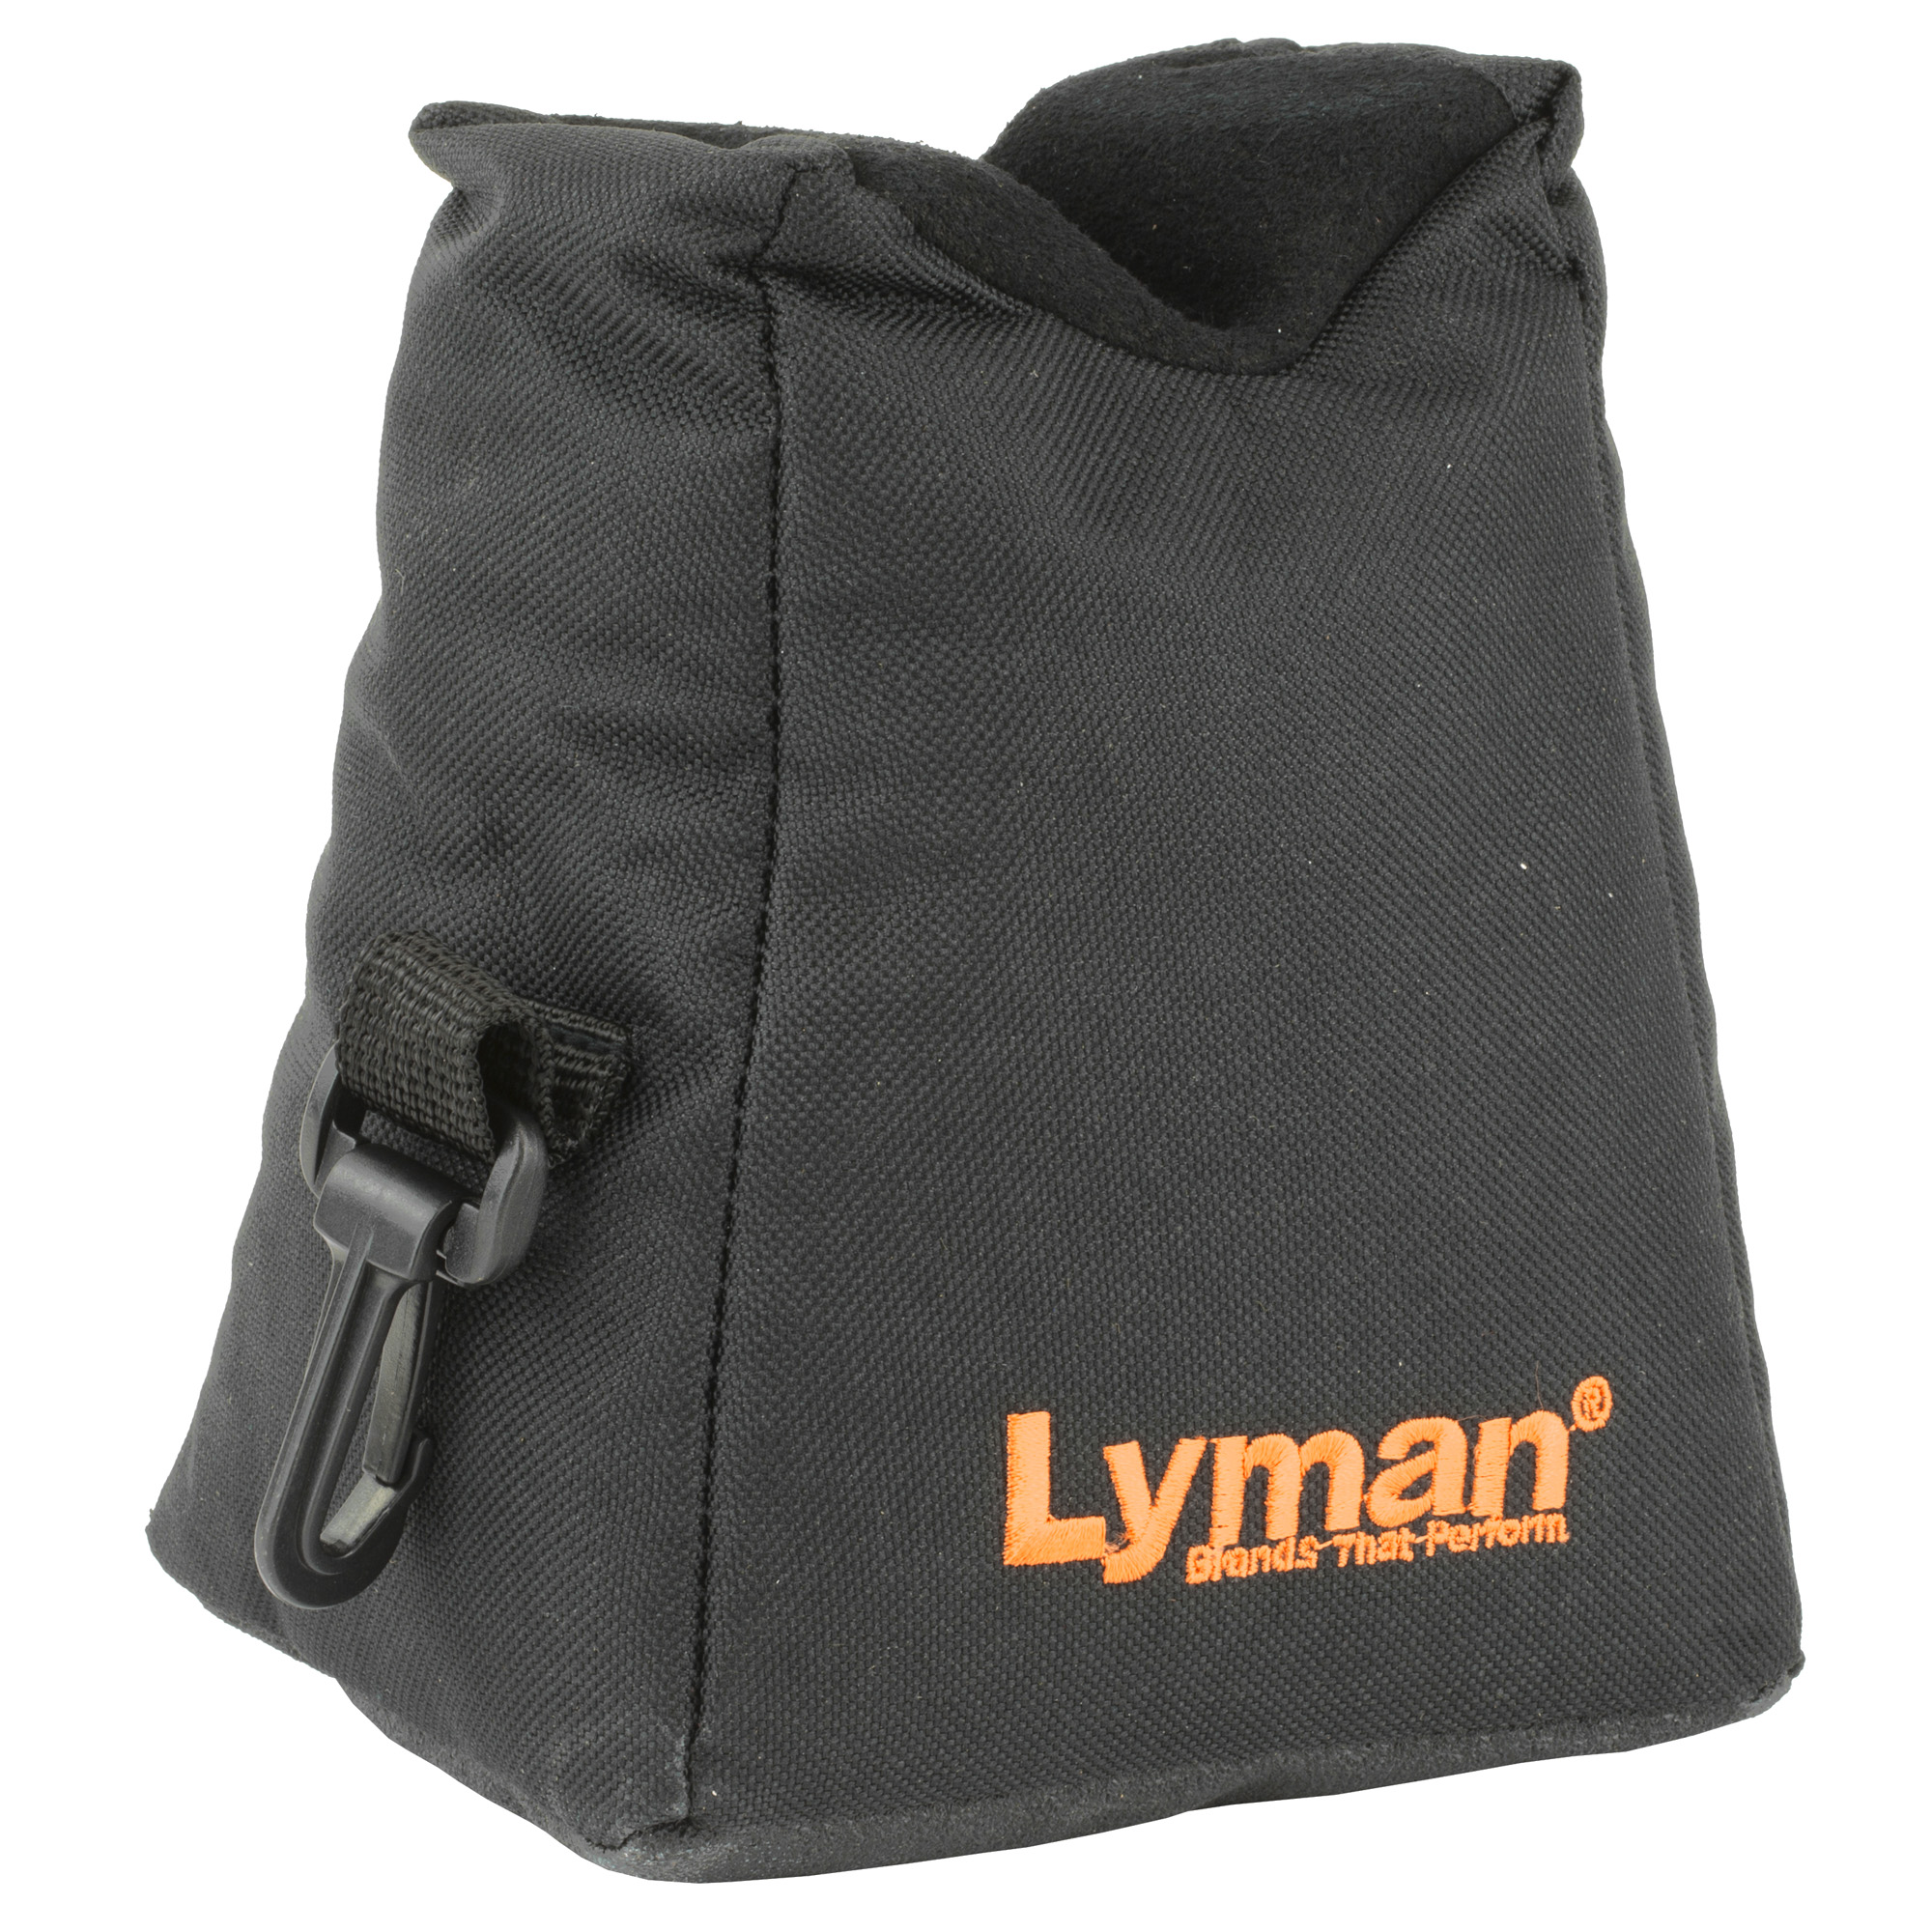 Lyman Crosshair Front Shting Bag Fld